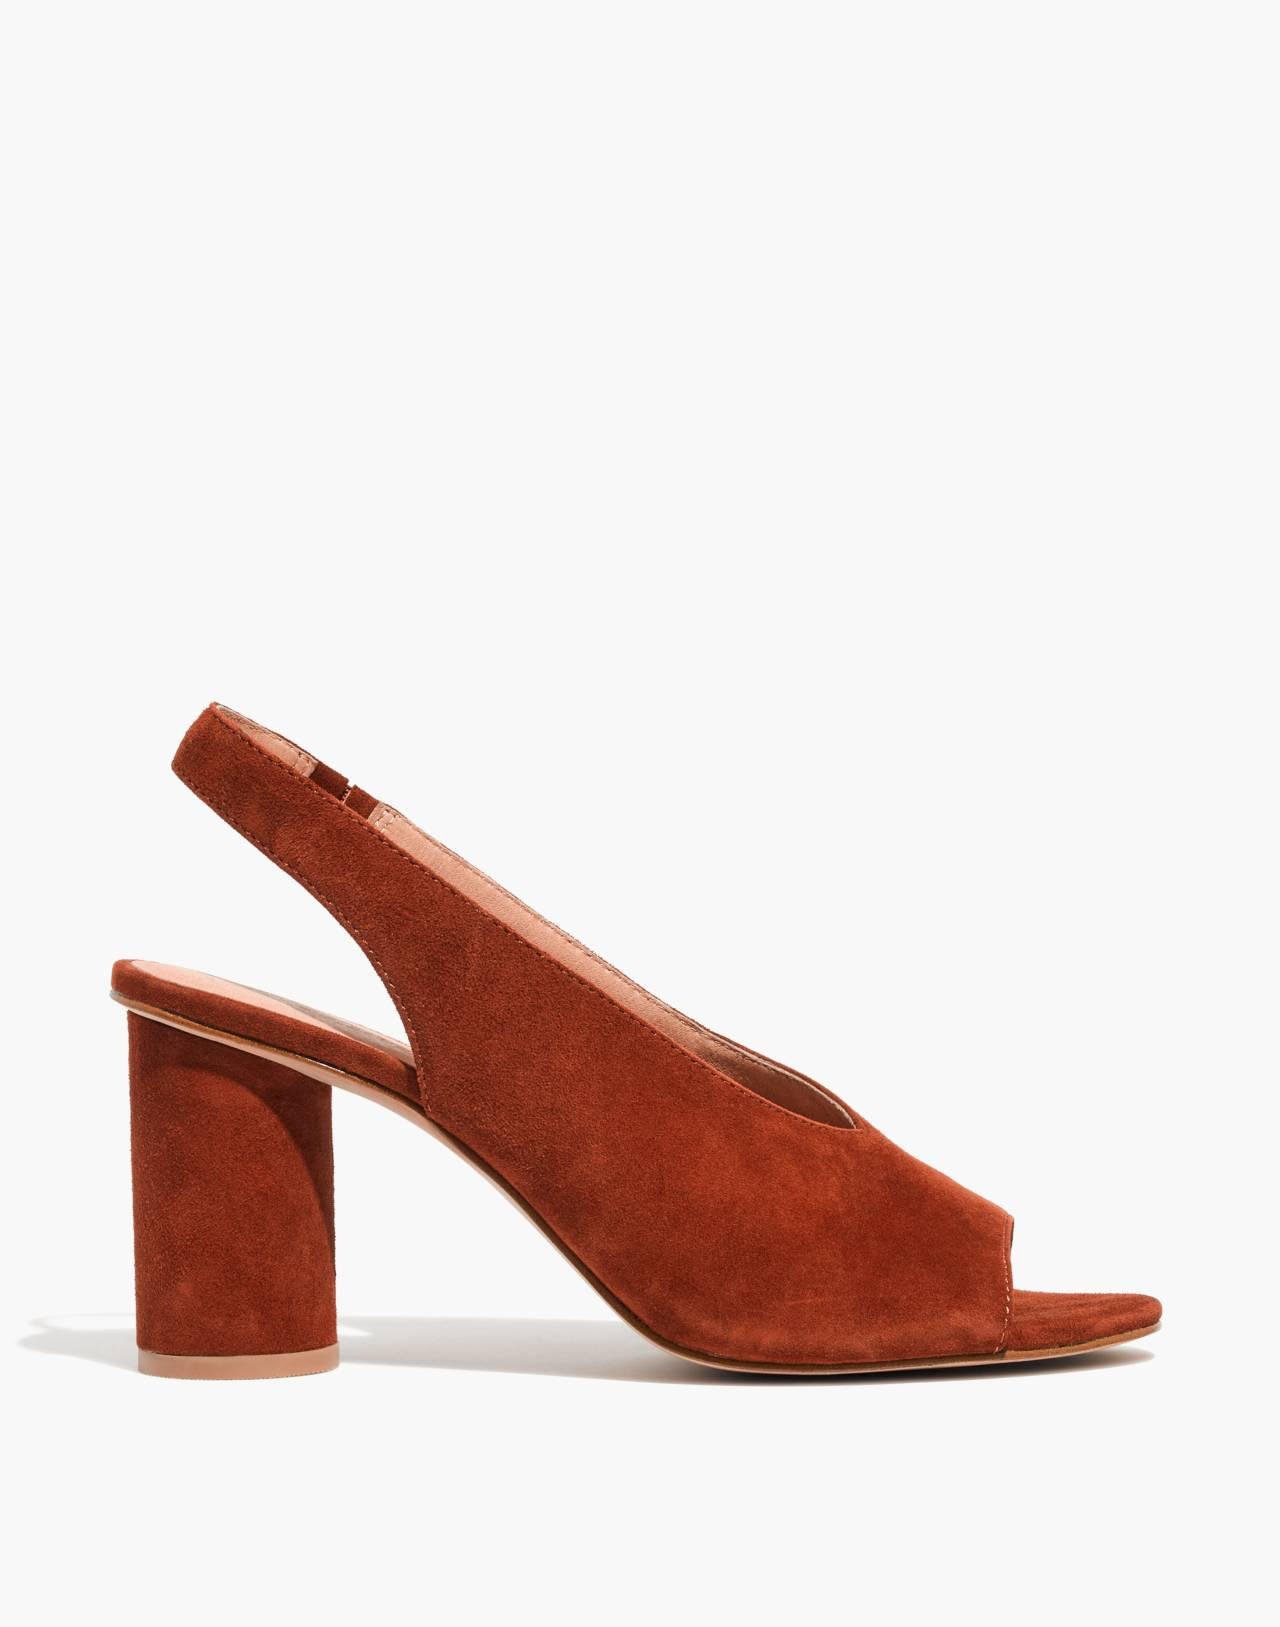 The Alana Slingback Sandal in maple syrup image 2